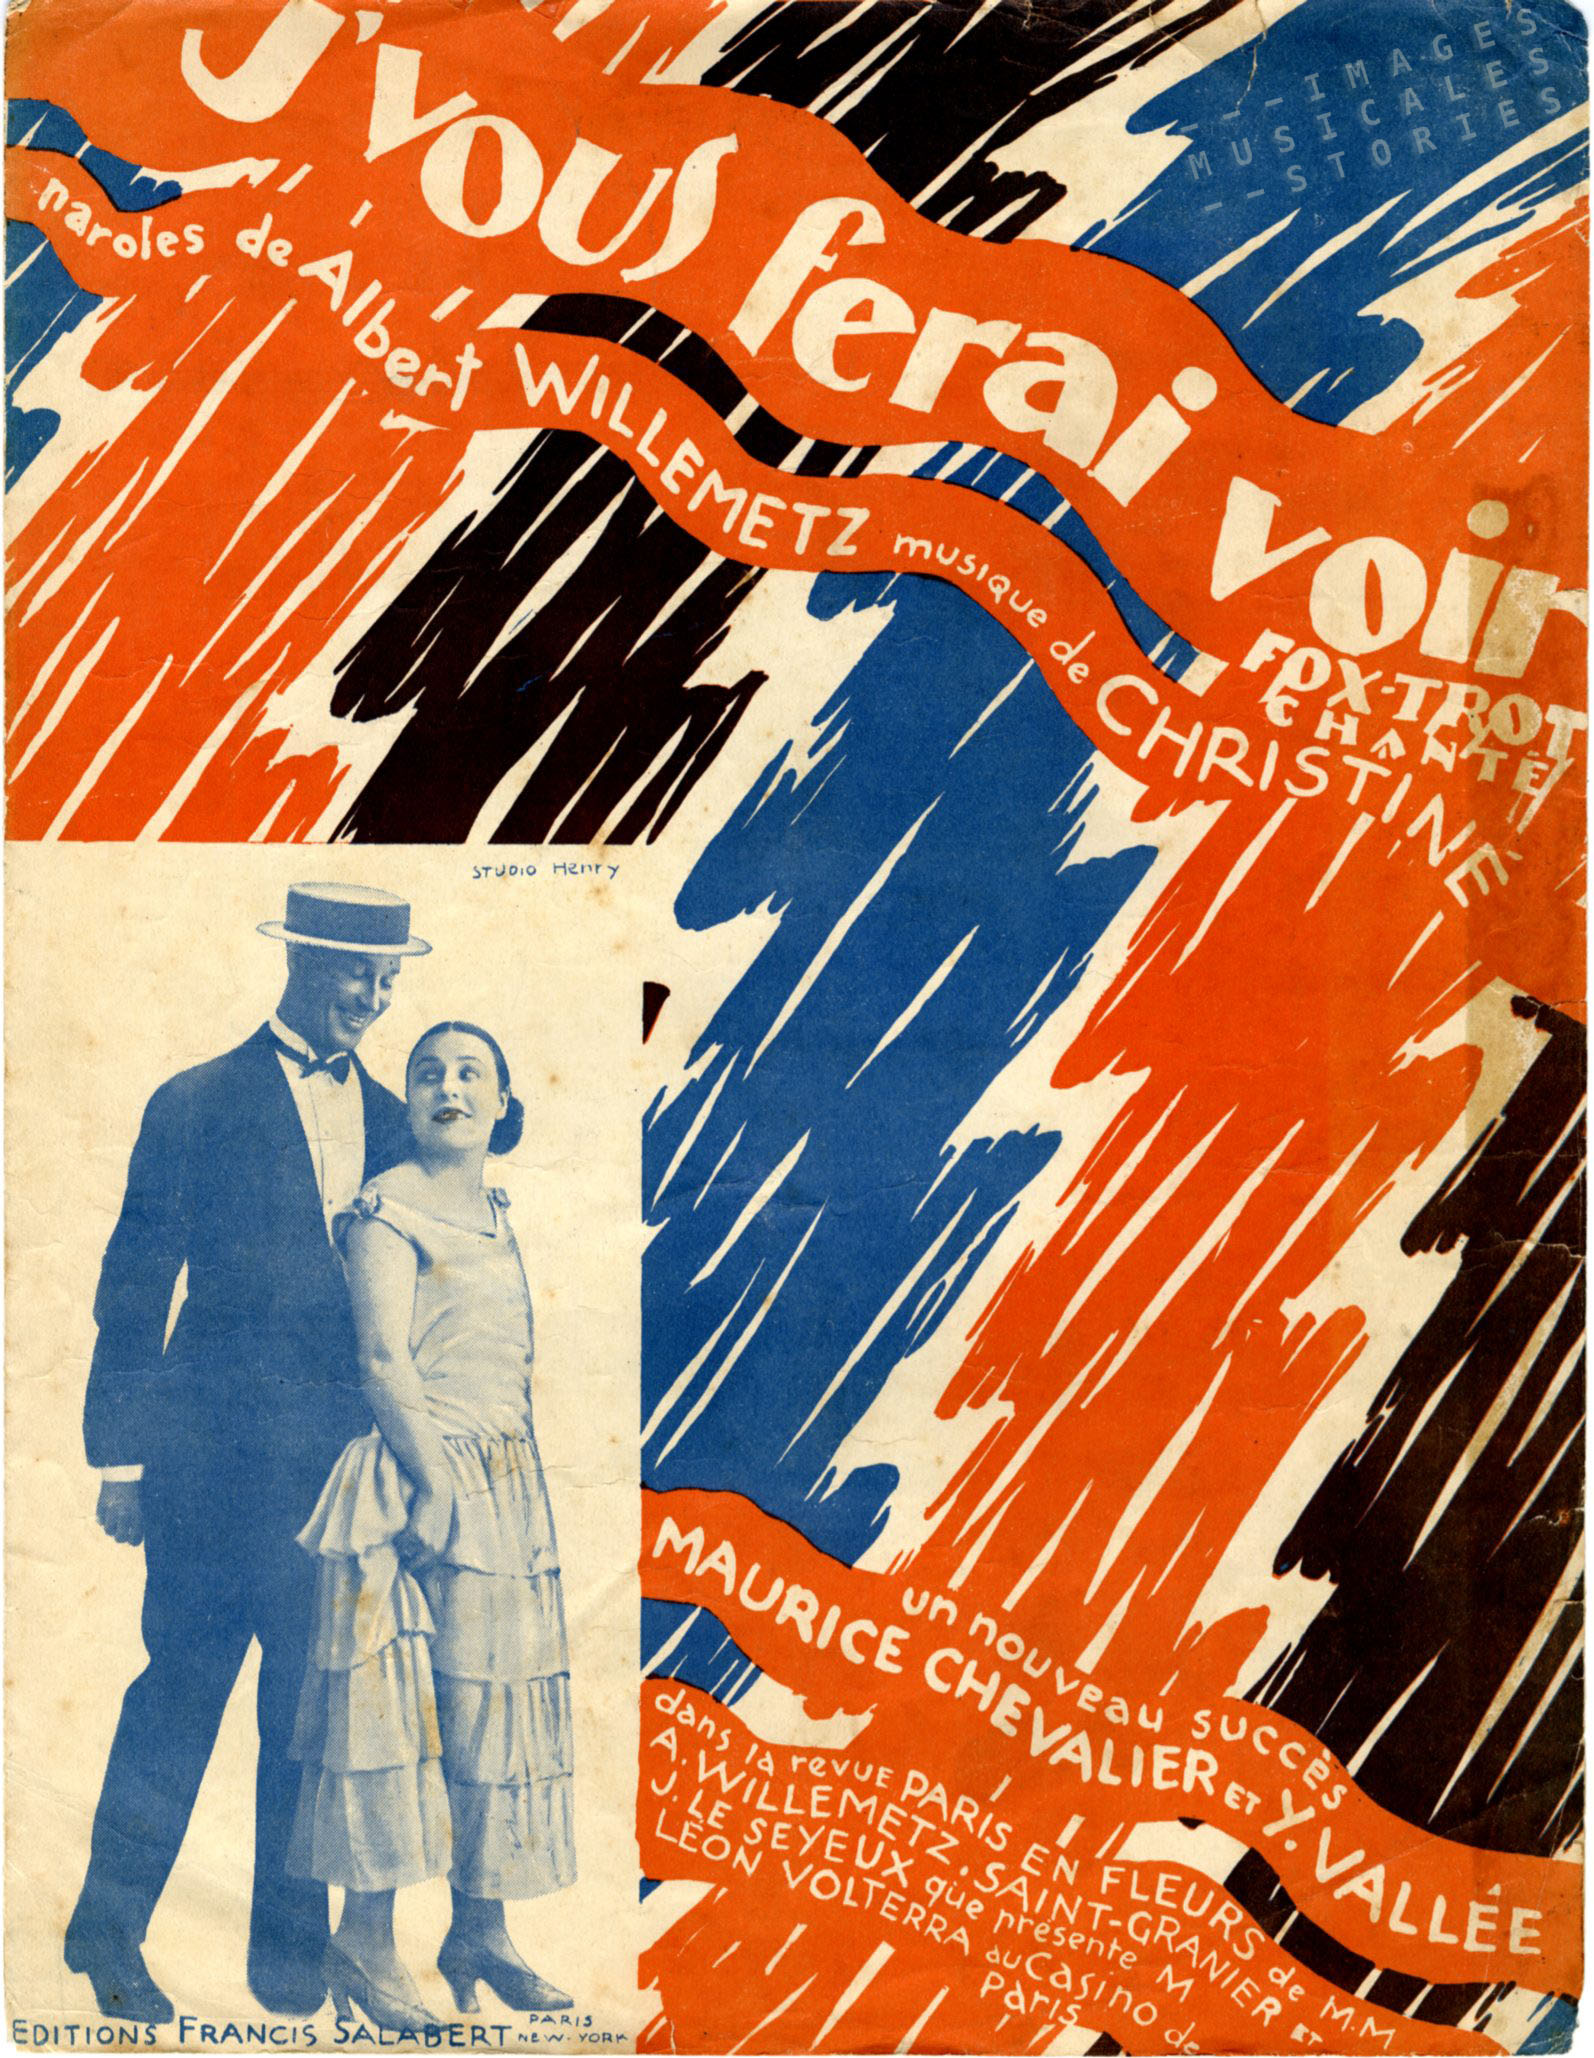 'J'vous ferai voir', illustrated by de Valerio (1925).